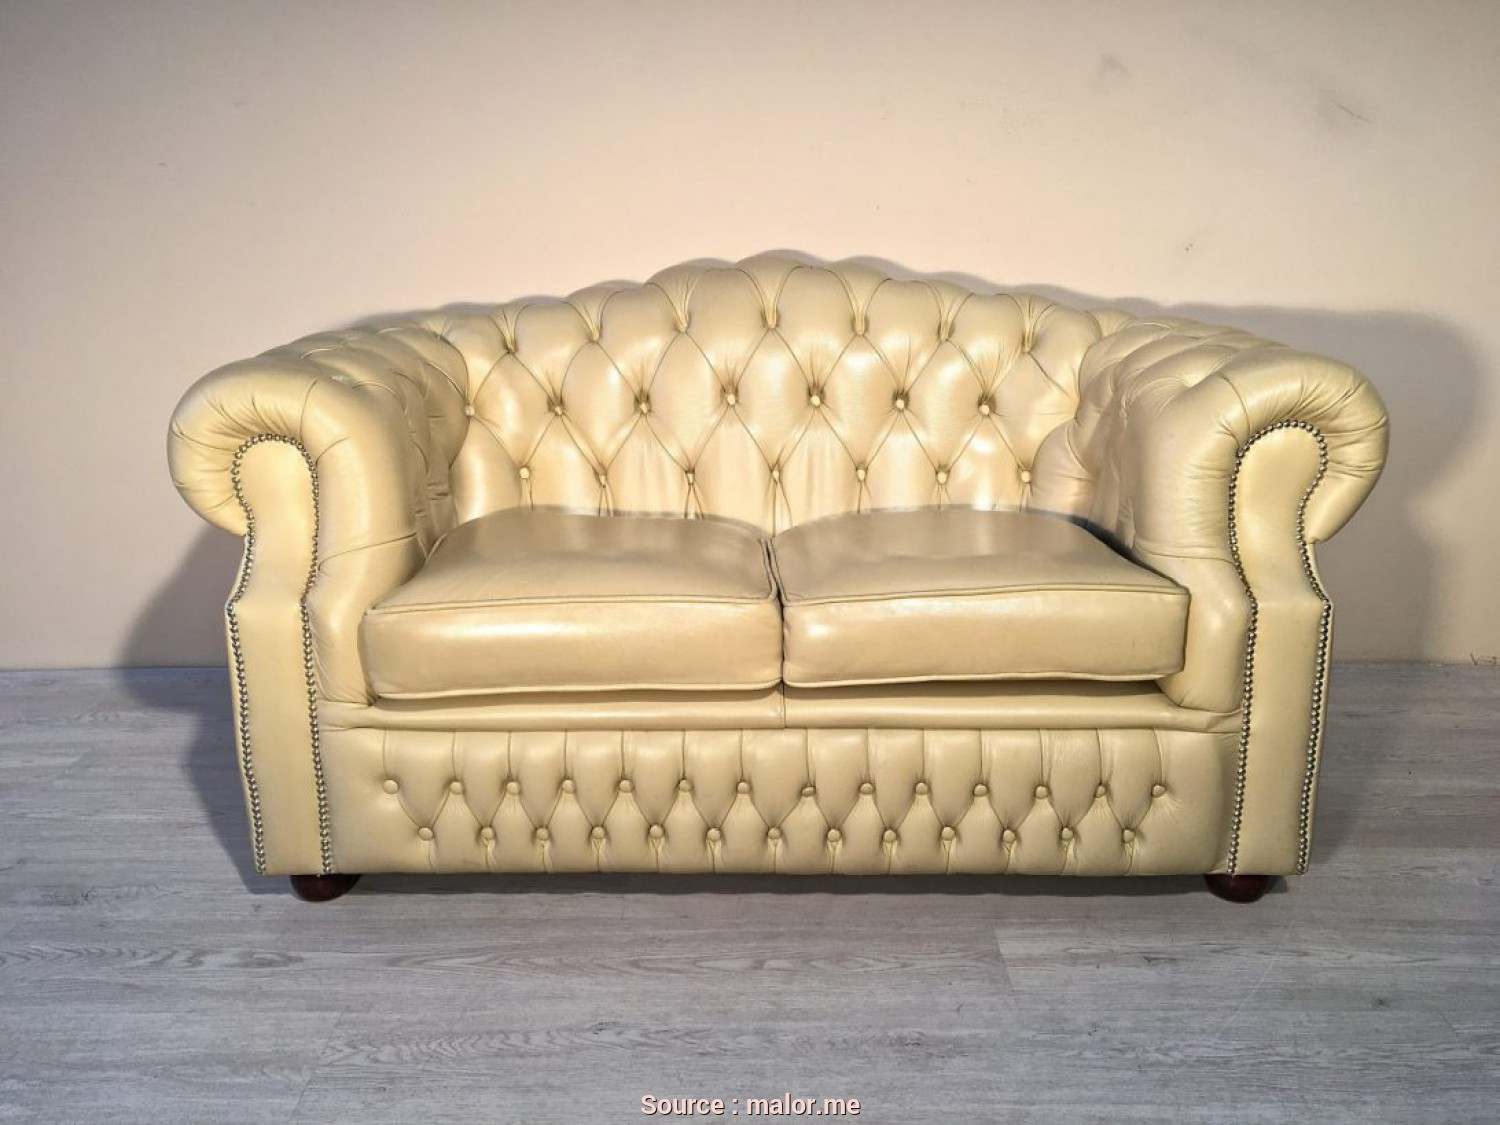 Divano Chesterfield Divani E Divani, Originale ... Large Size Of Divano Chesterfield Originale Inglese In Pelle Bull Divani Chesterfield Divano Chesterfield Divani Divani